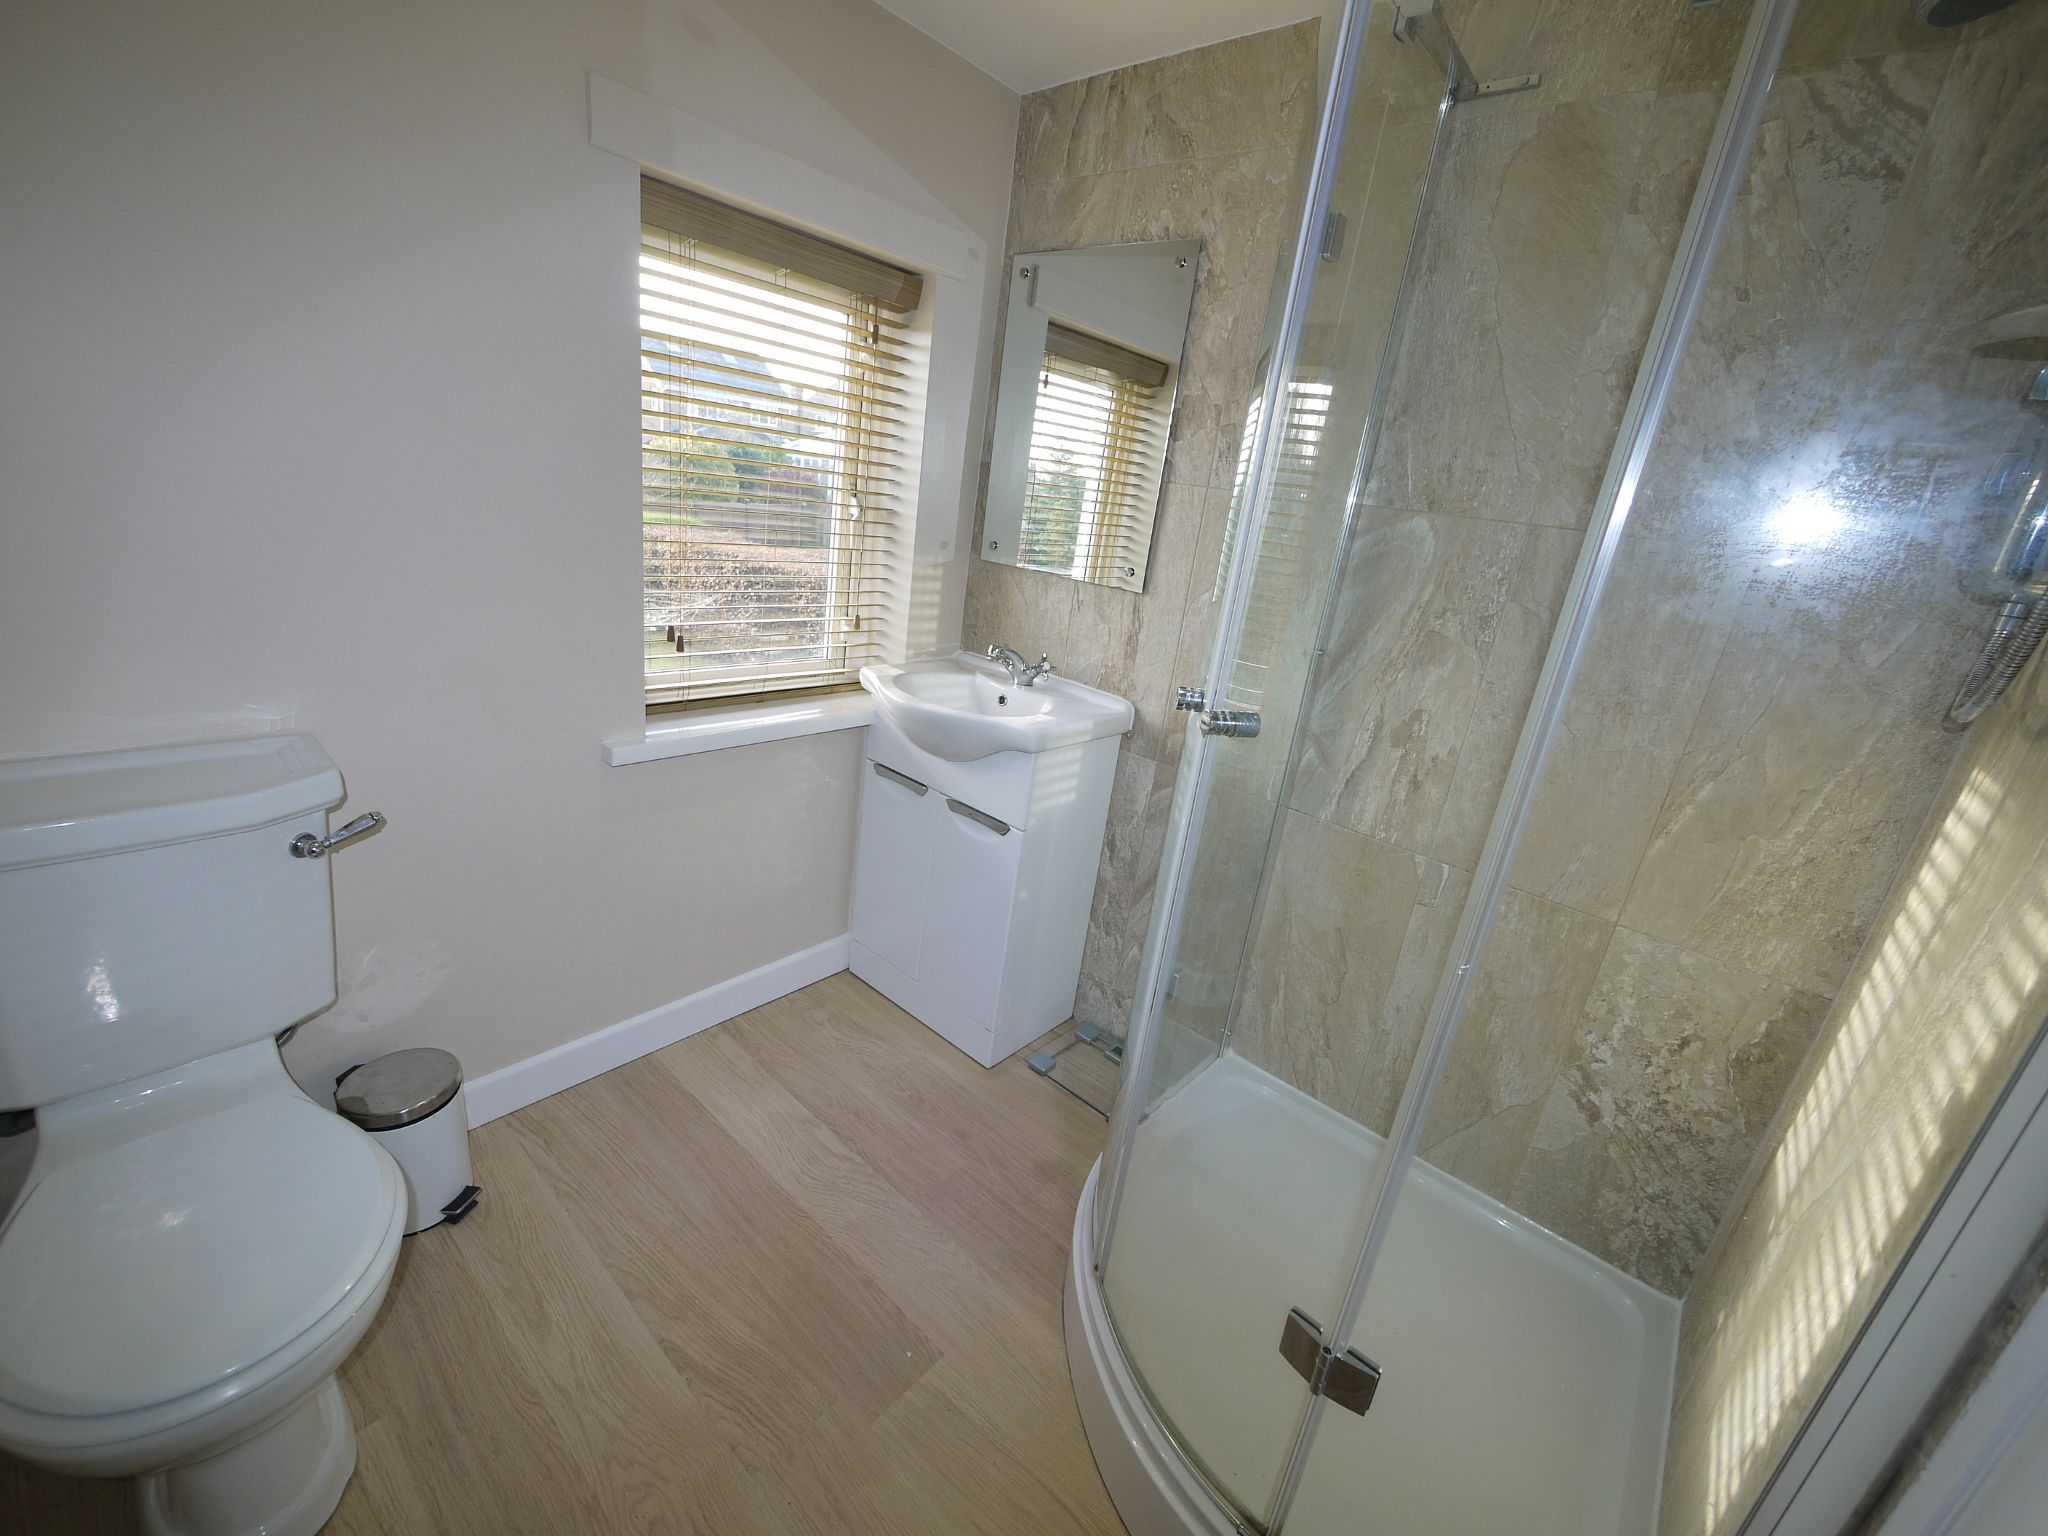 5 bedroom detached bungalow For Sale in Brighouse - ensuite.